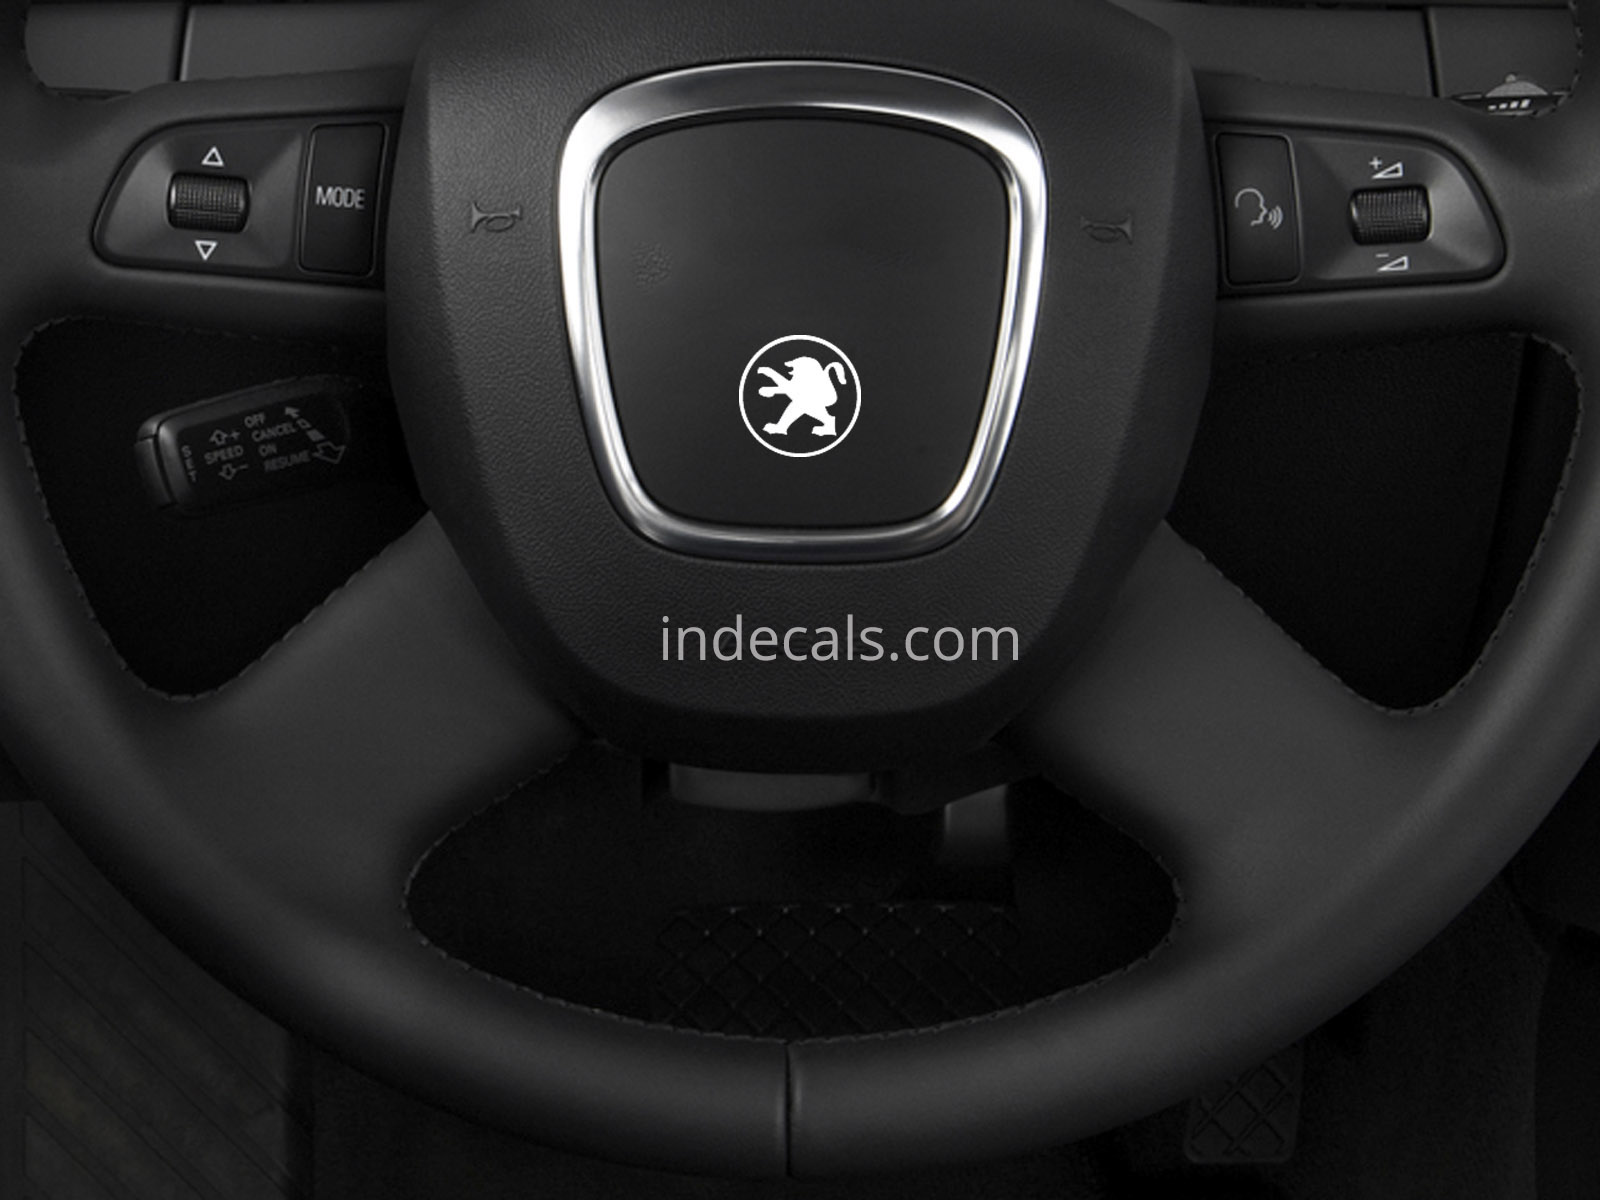 3 x Peugeot Stickers for Steering Wheel - White